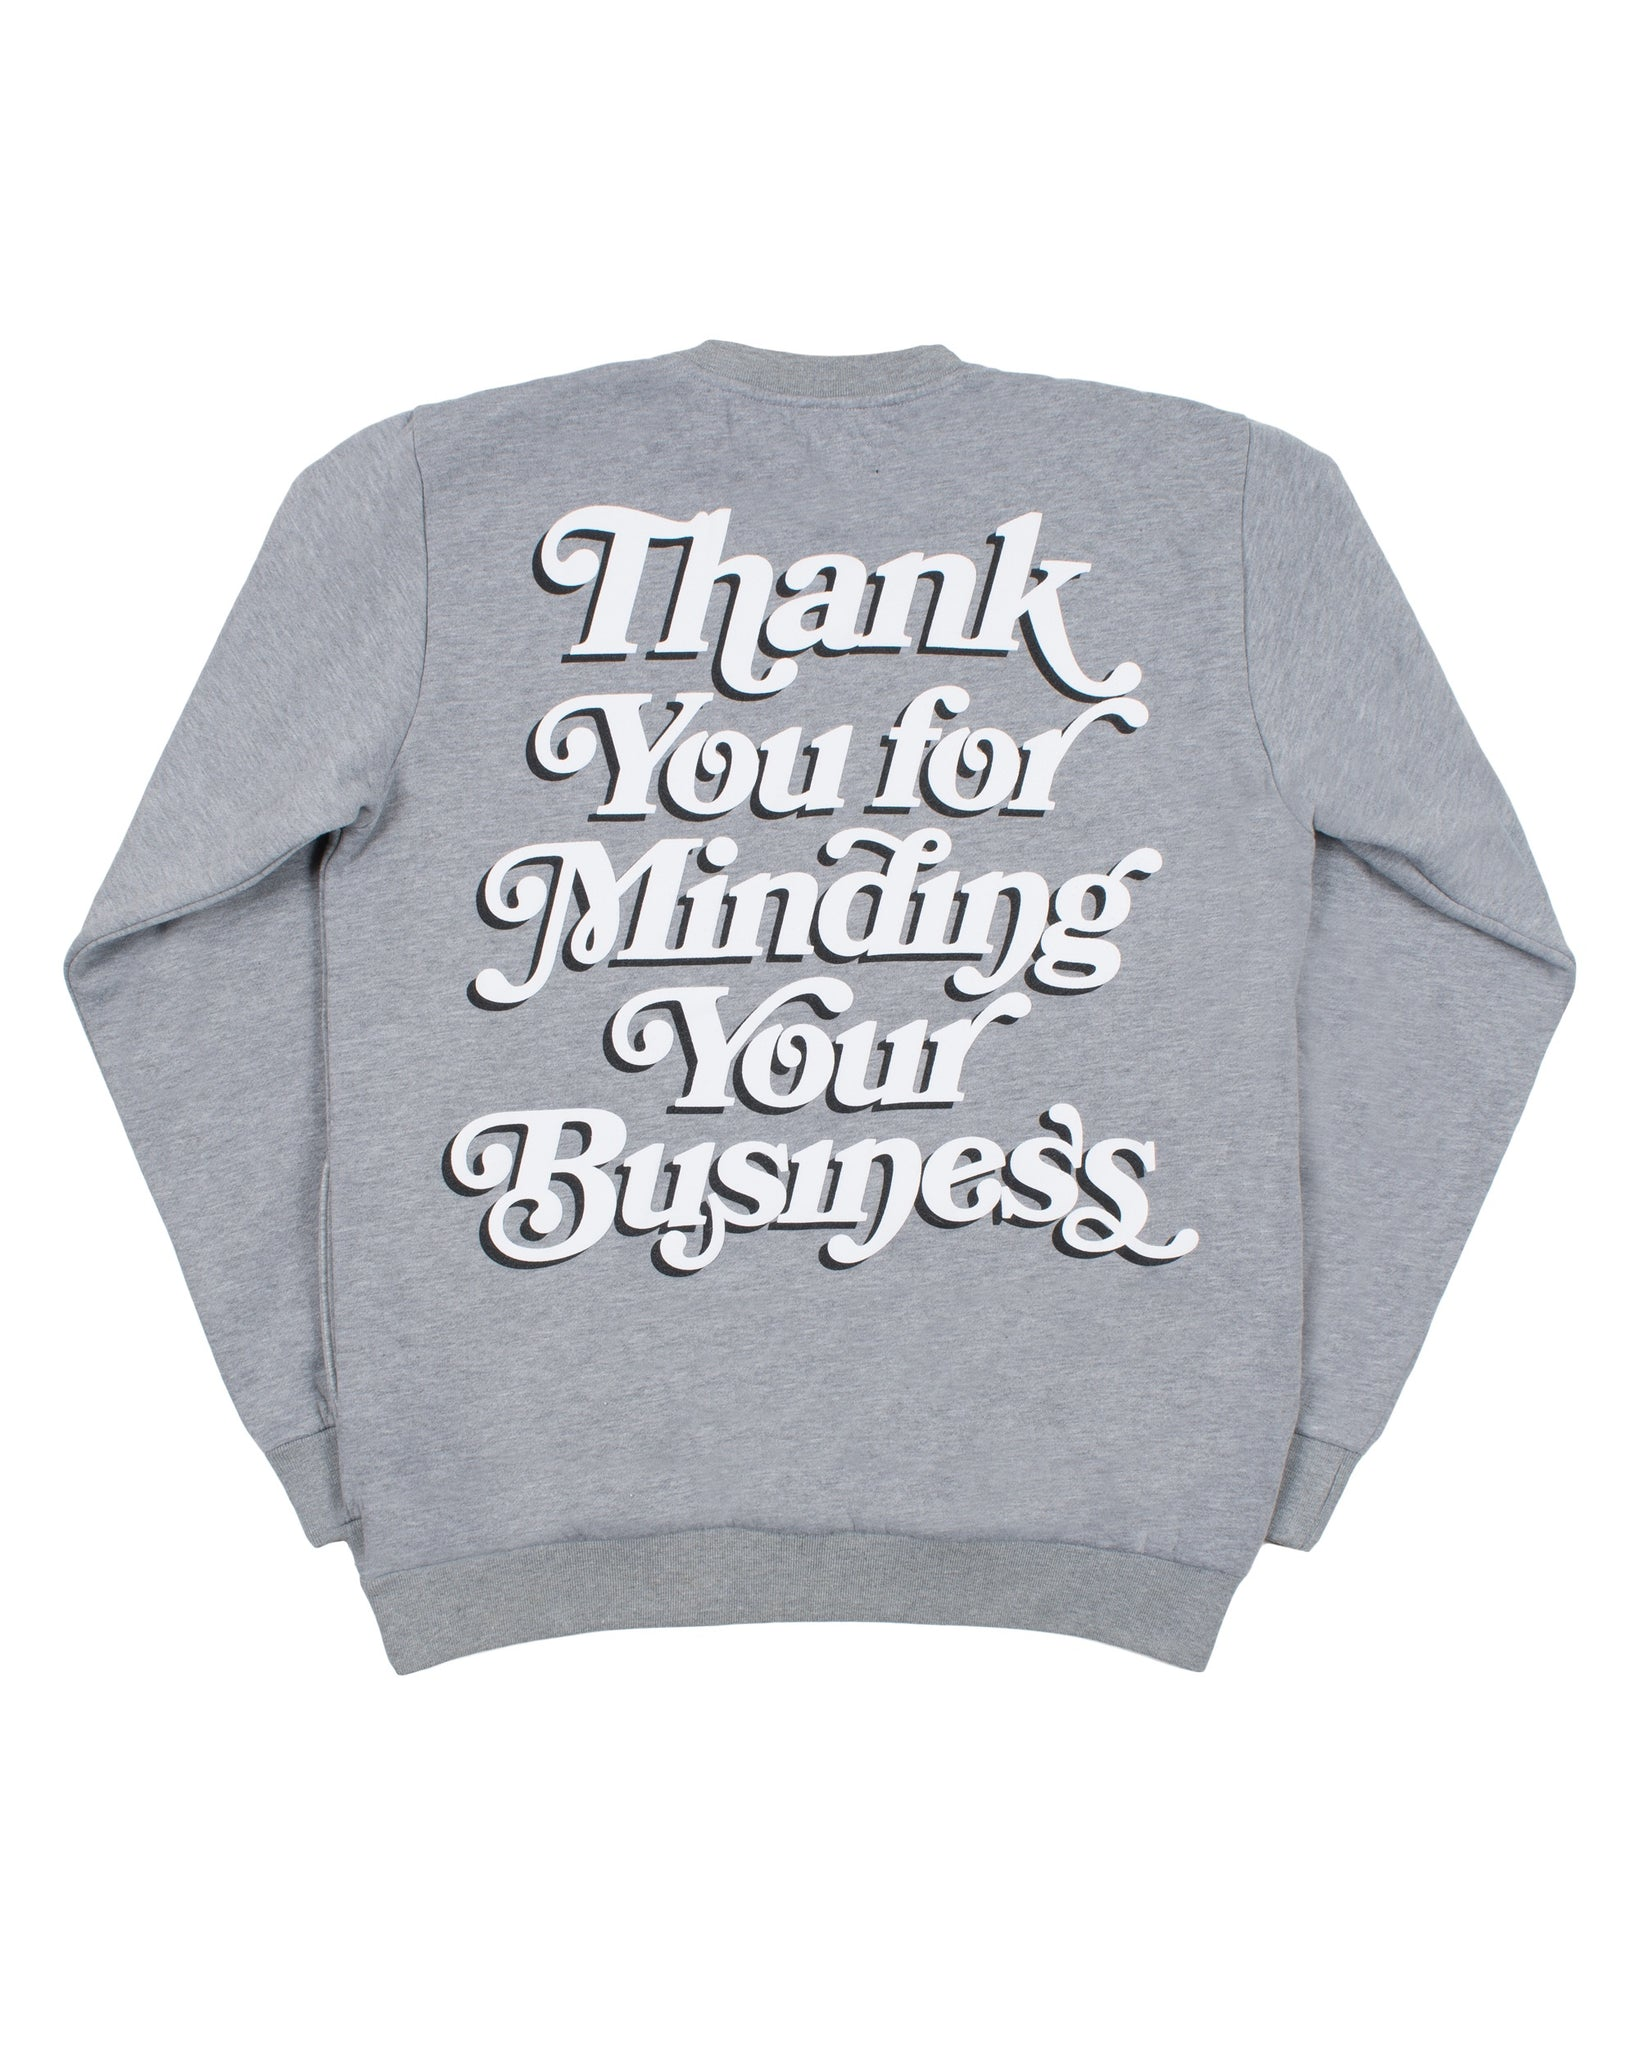 Mind Your Business Sweatshirt (Gry/Blk)